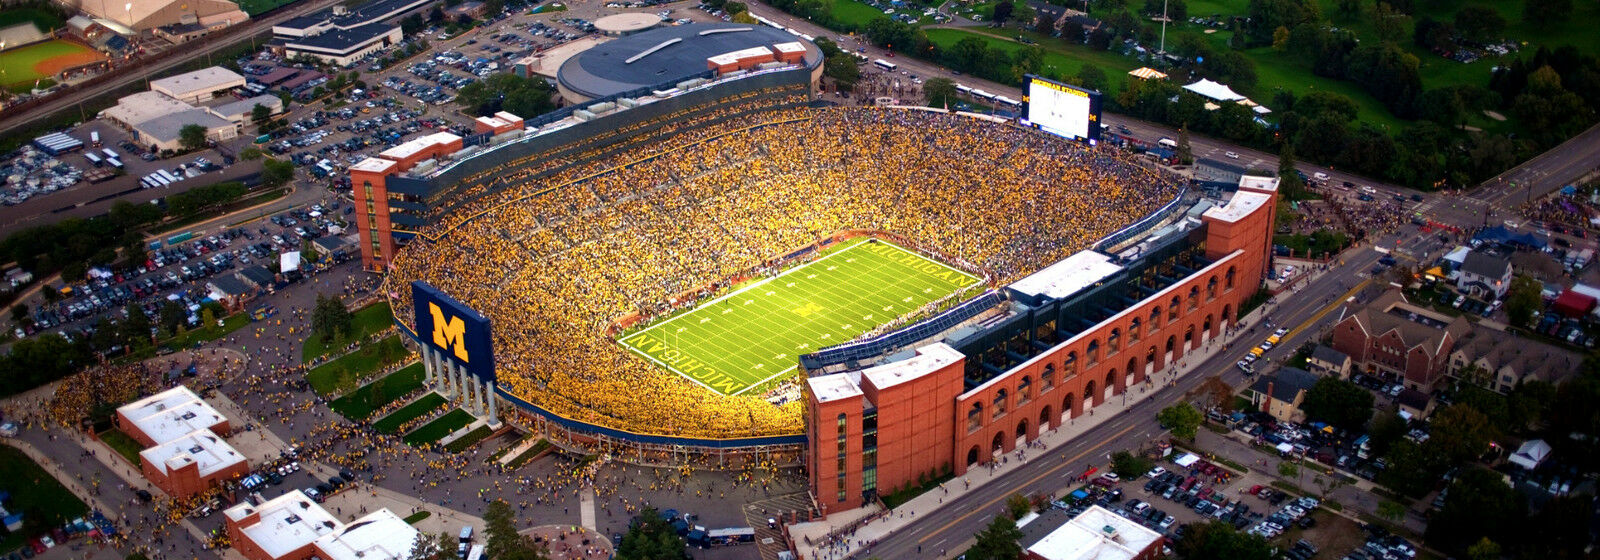 PARKING PASSES ONLY 2018 Michigan Wolverines Football Season Tickets - Season Package